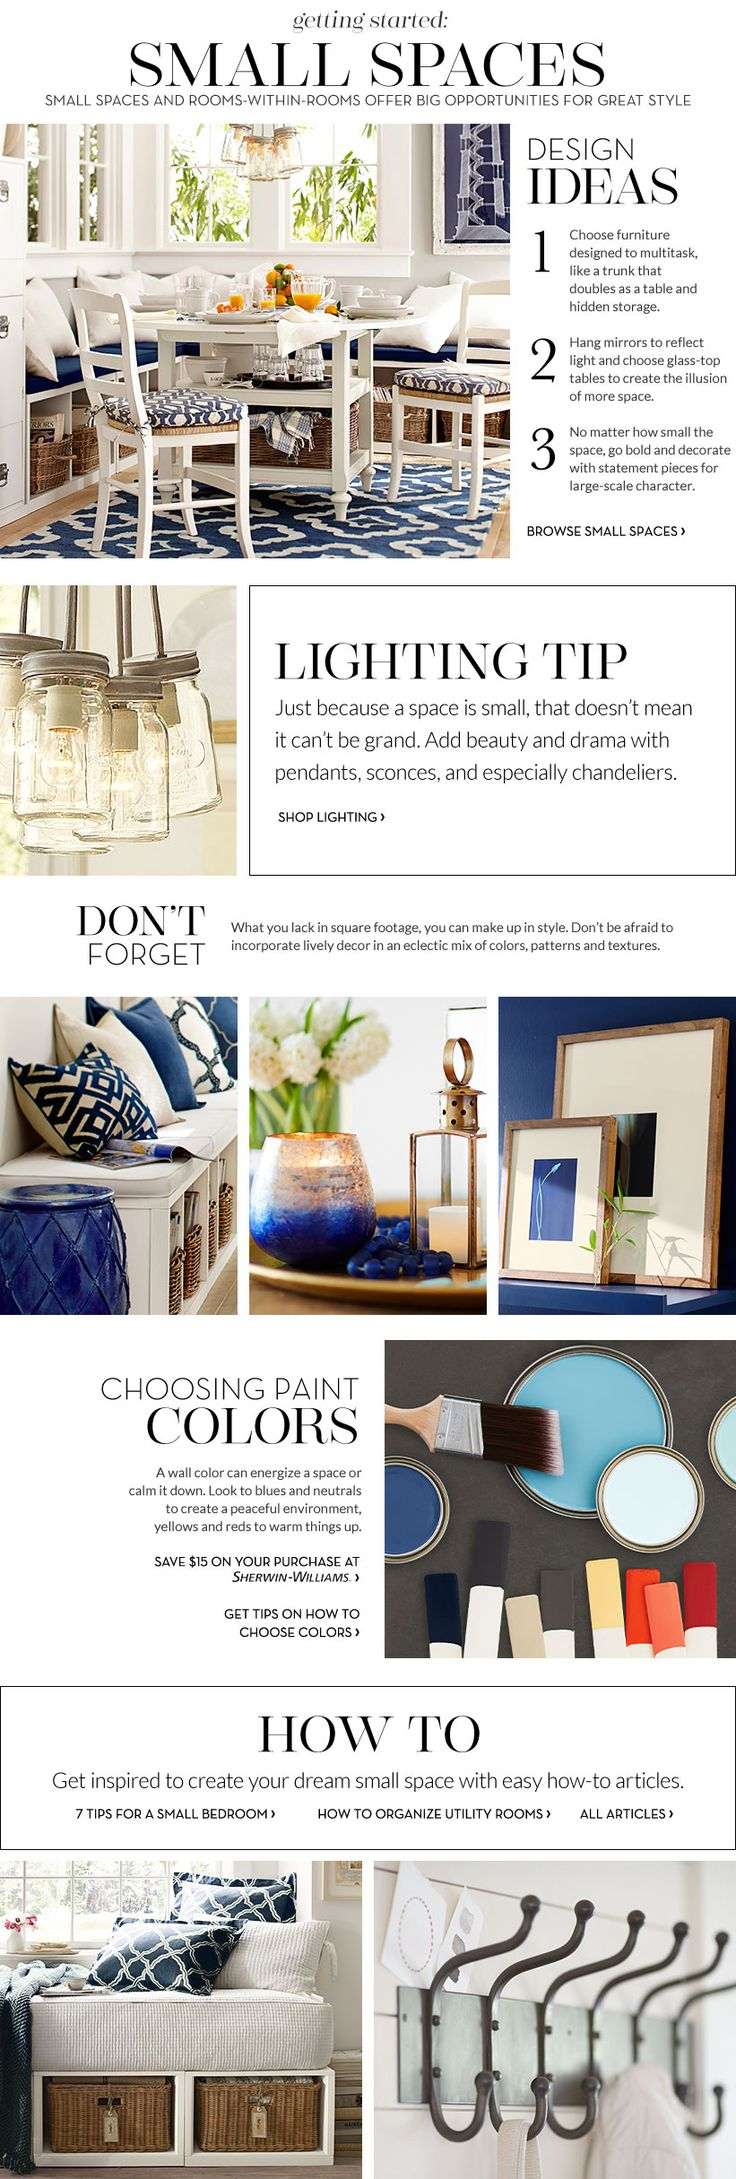 Small Spaces Inspiration & How to Decorate Small Spaces   Pottery Barn